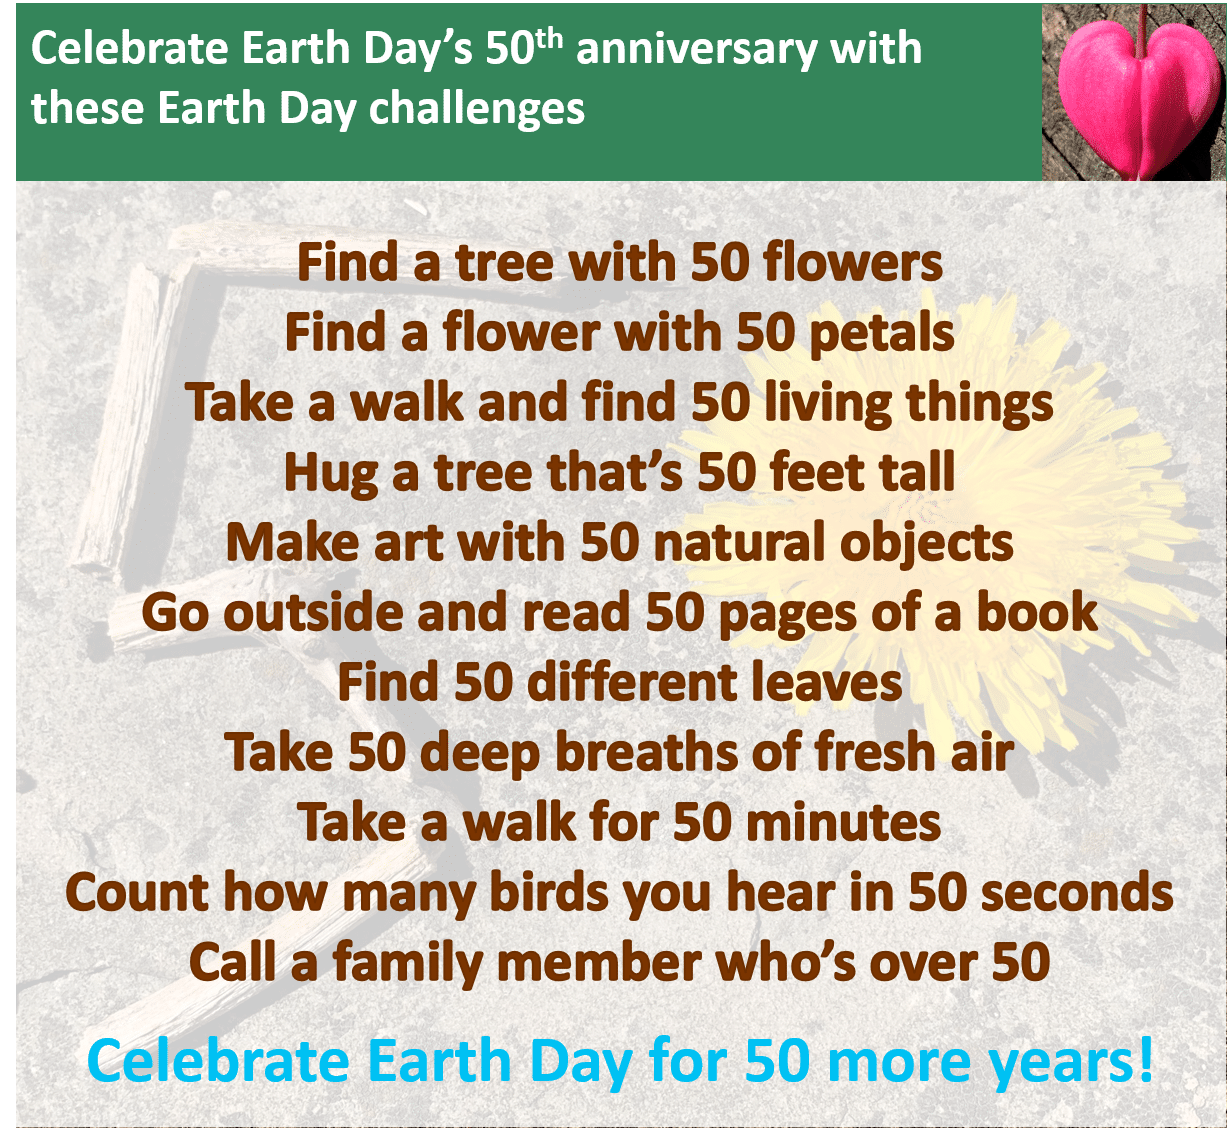 A graphic of Earth Day Challenges